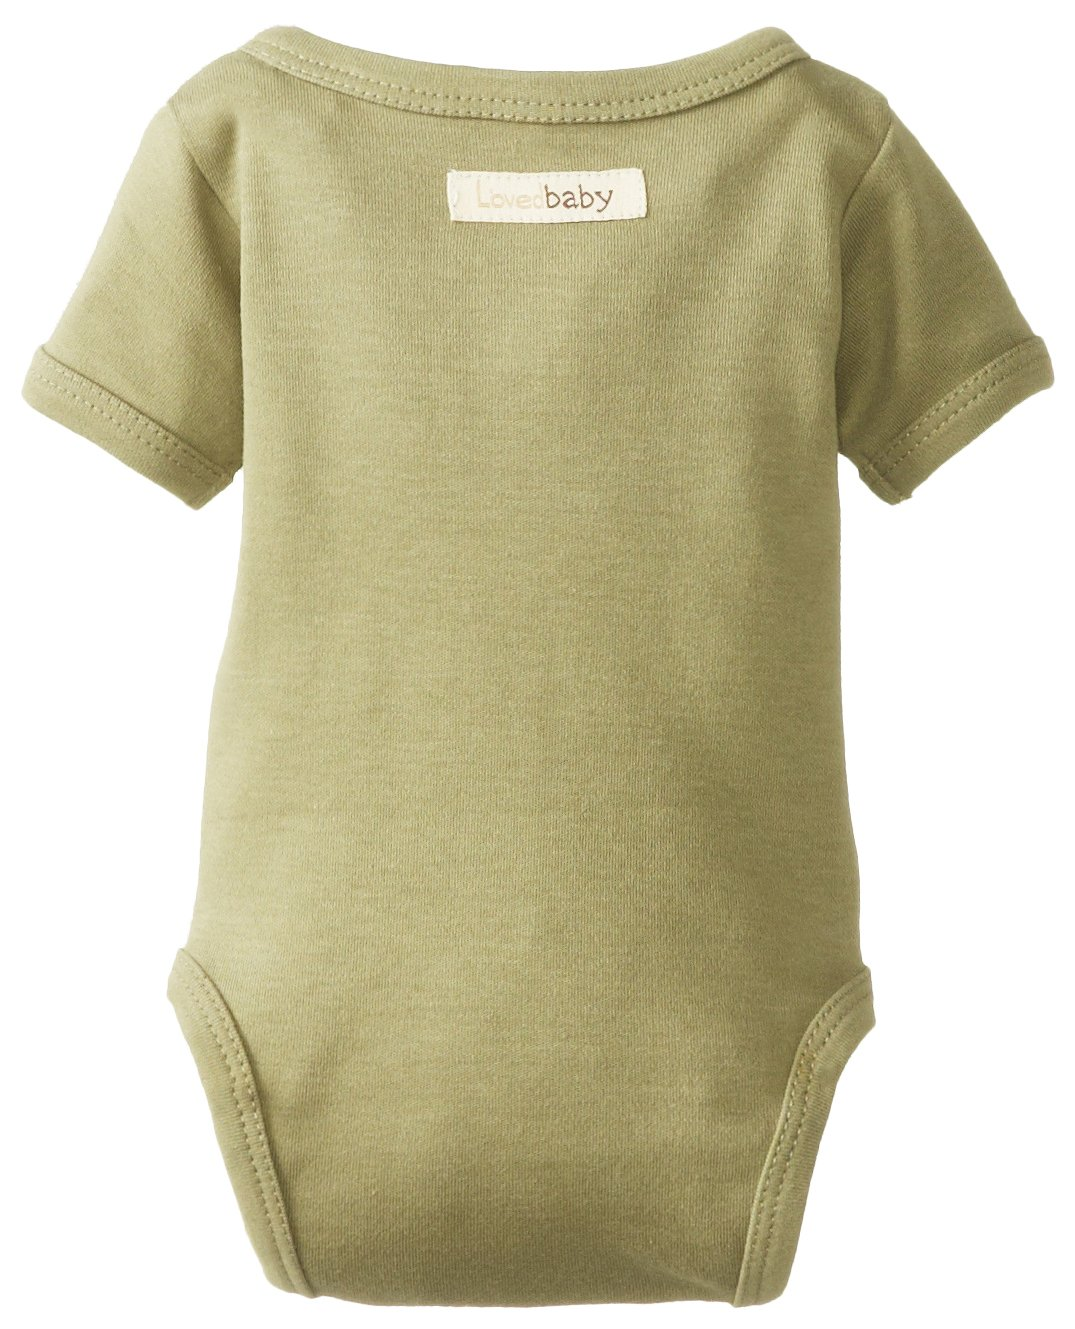 L'ovedbaby Unisex-Baby Organic Cotton Kimono Short Sleeve  Bodysuit, Sage, 0/3 Months by L'ovedbaby (Image #2)